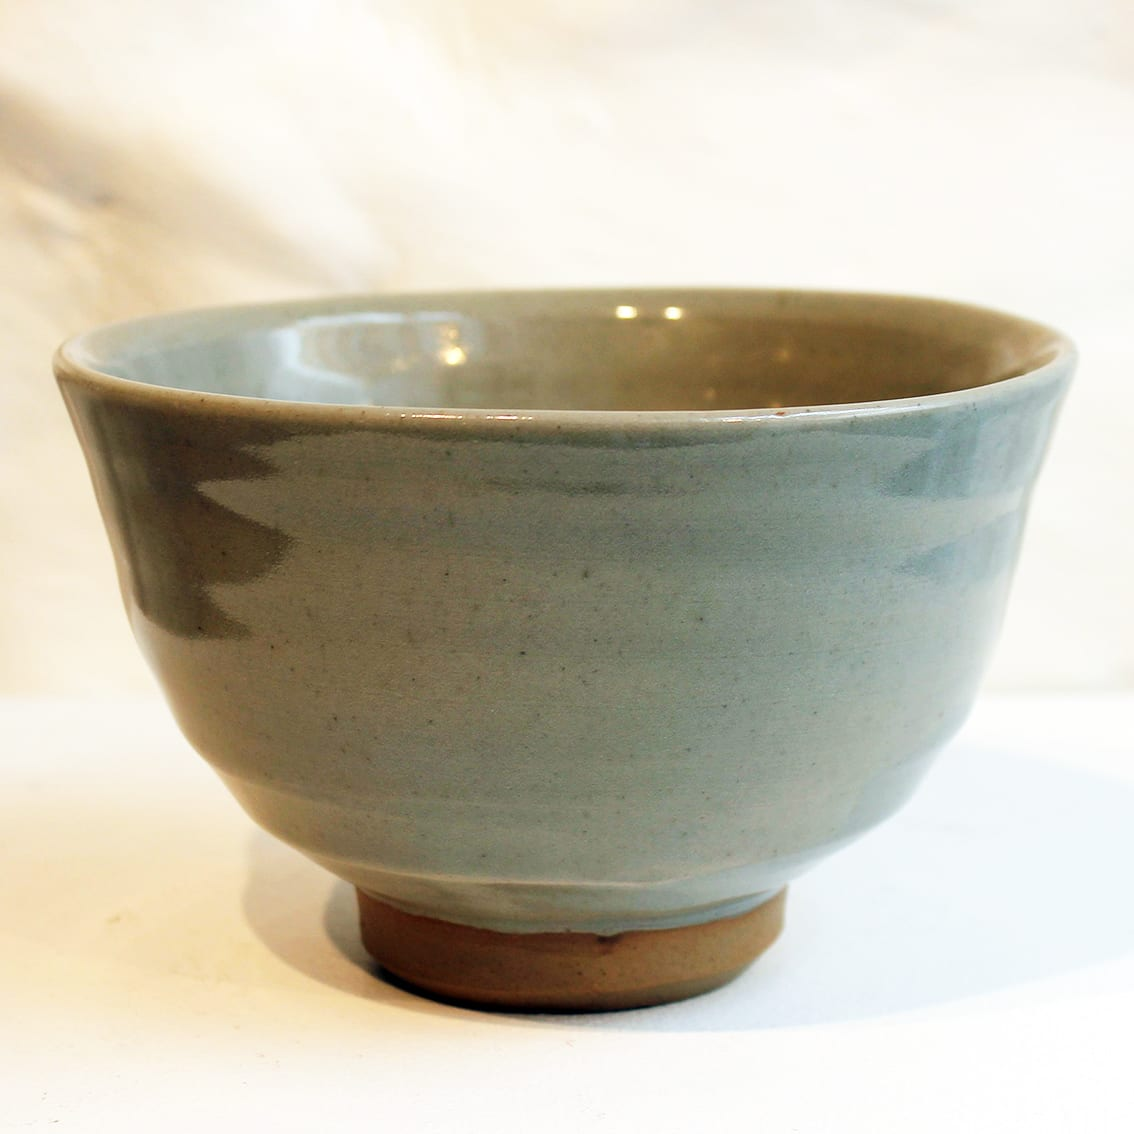 """<span class=""""link fancybox-details-link""""><a href=""""/artists/200-matthew-tyas/works/5447-matthew-tyas-ying-ching-porcelain-chawan-bowl-2018/"""">View Detail Page</a></span><div class=""""artist""""><strong>Matthew Tyas</strong></div> <div class=""""title""""><em>Ying Ching Porcelain Chawan Bowl</em>, 2018</div> <div class=""""signed_and_dated"""">stamped by the artist</div> <div class=""""medium"""">glazed thrown porcelain</div><div class=""""price"""">£75.00</div><div class=""""copyright_line"""">Copyright The Artist</div>"""